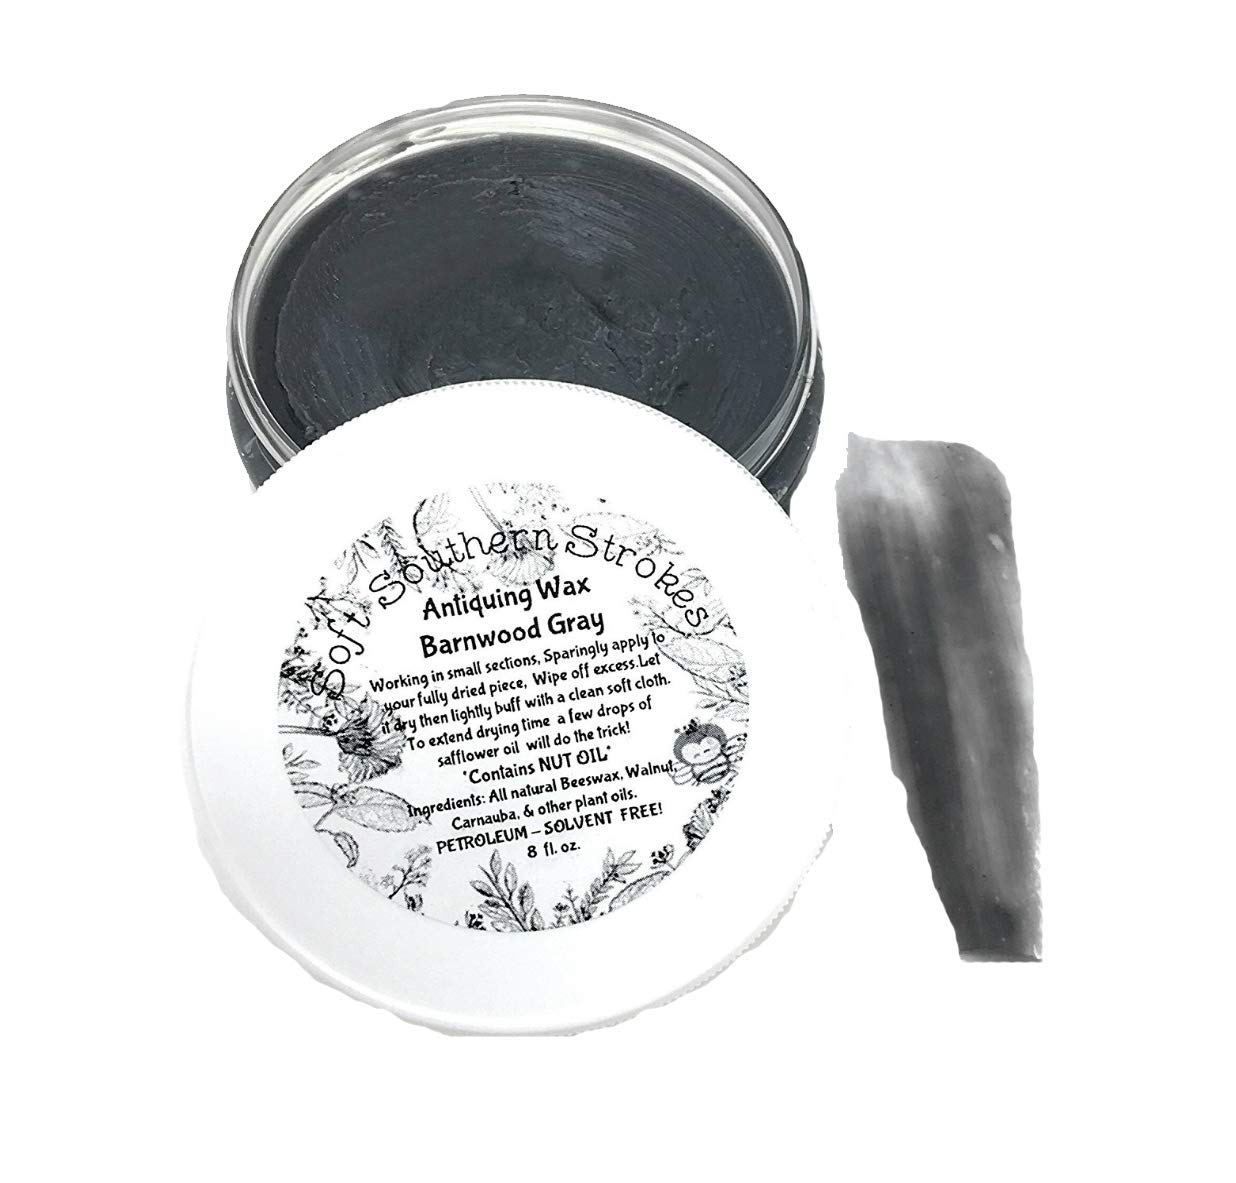 Antiquing Wax Decorative Soft Finishing Vintage Furniture Wax Great for Arts and Crafts 2 oz, or 8 oz. (8 oz, Barnwood Gray)